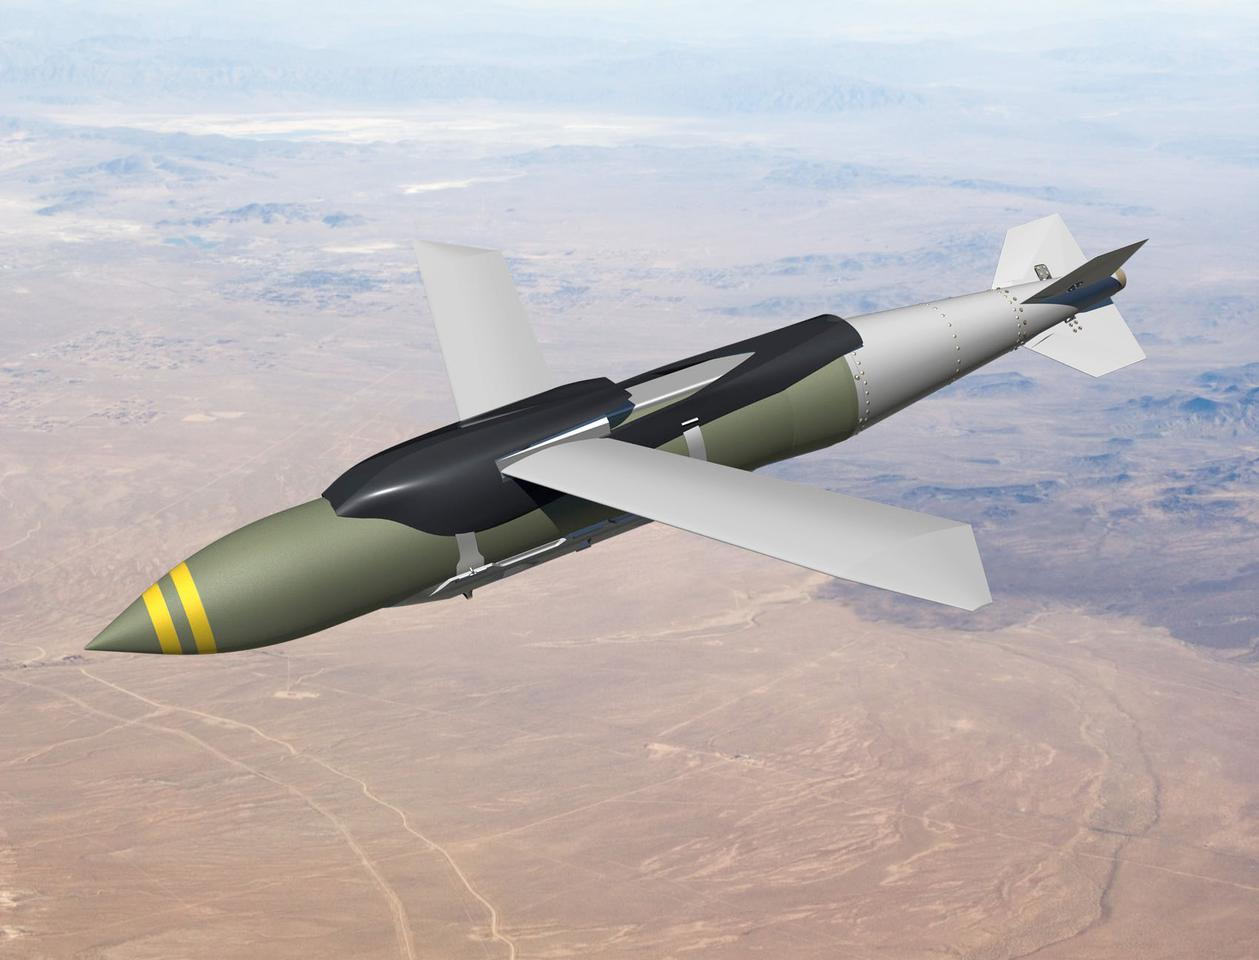 The Joint Direct Attack Munition-Extended Range (JDAM-ER) precision bomb kit developed by Boeing and Australia's Defence Science and Technology Organisation (Image: Boeing)